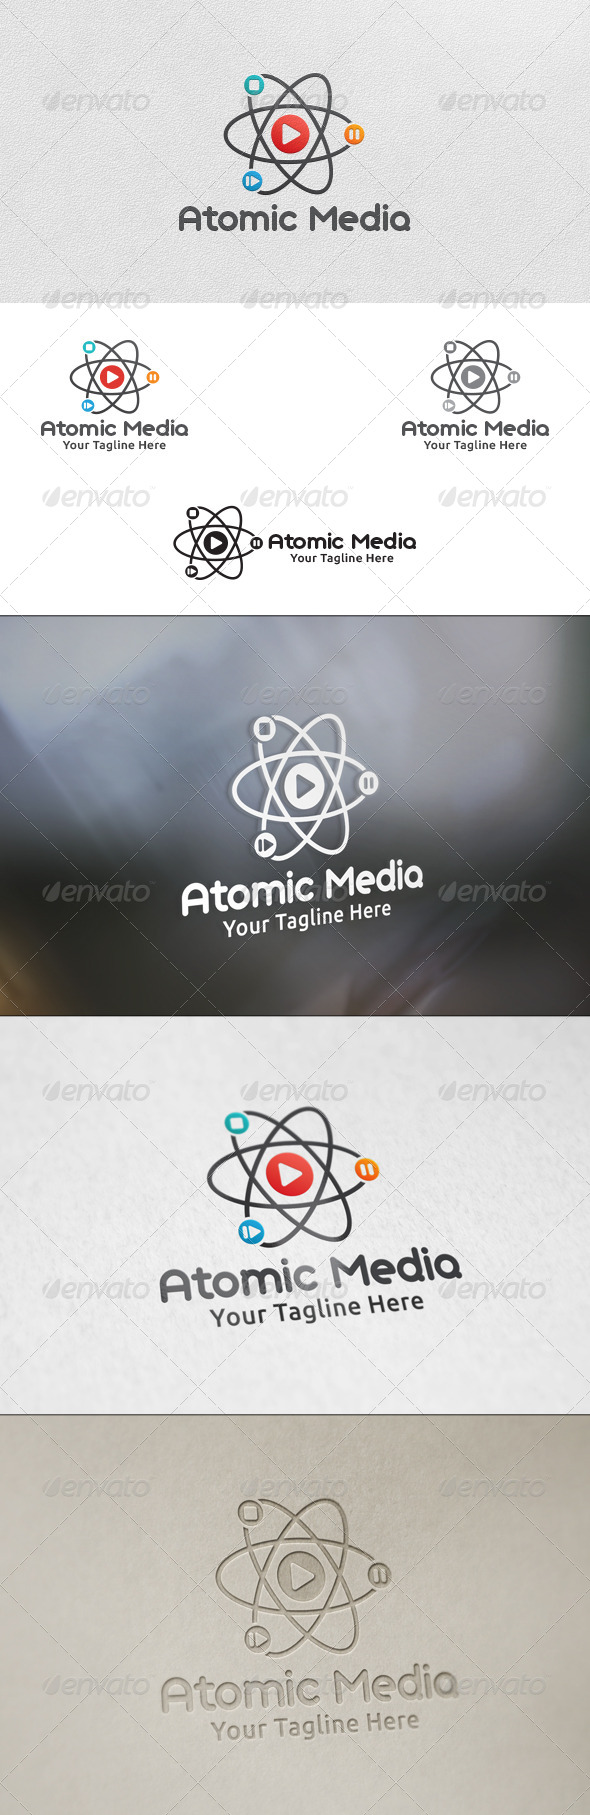 GraphicRiver Atomic Media Logo Template 5938499